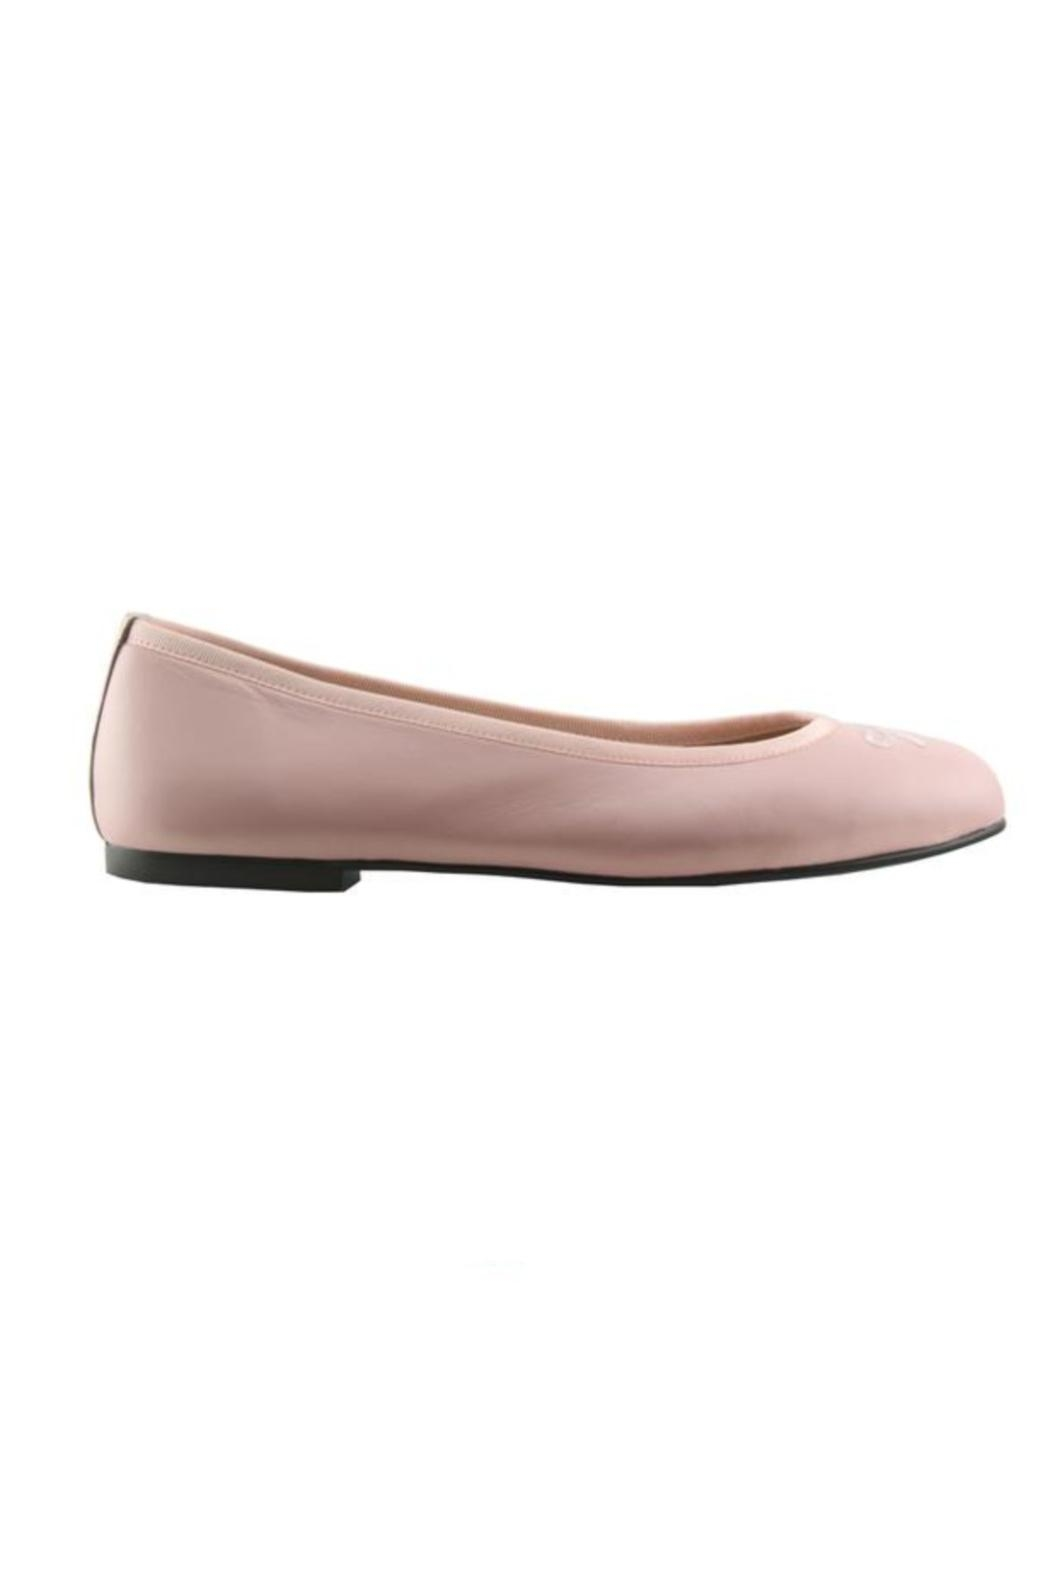 French Sole FS/NY Kathy Ballet Flat - Front Full Image